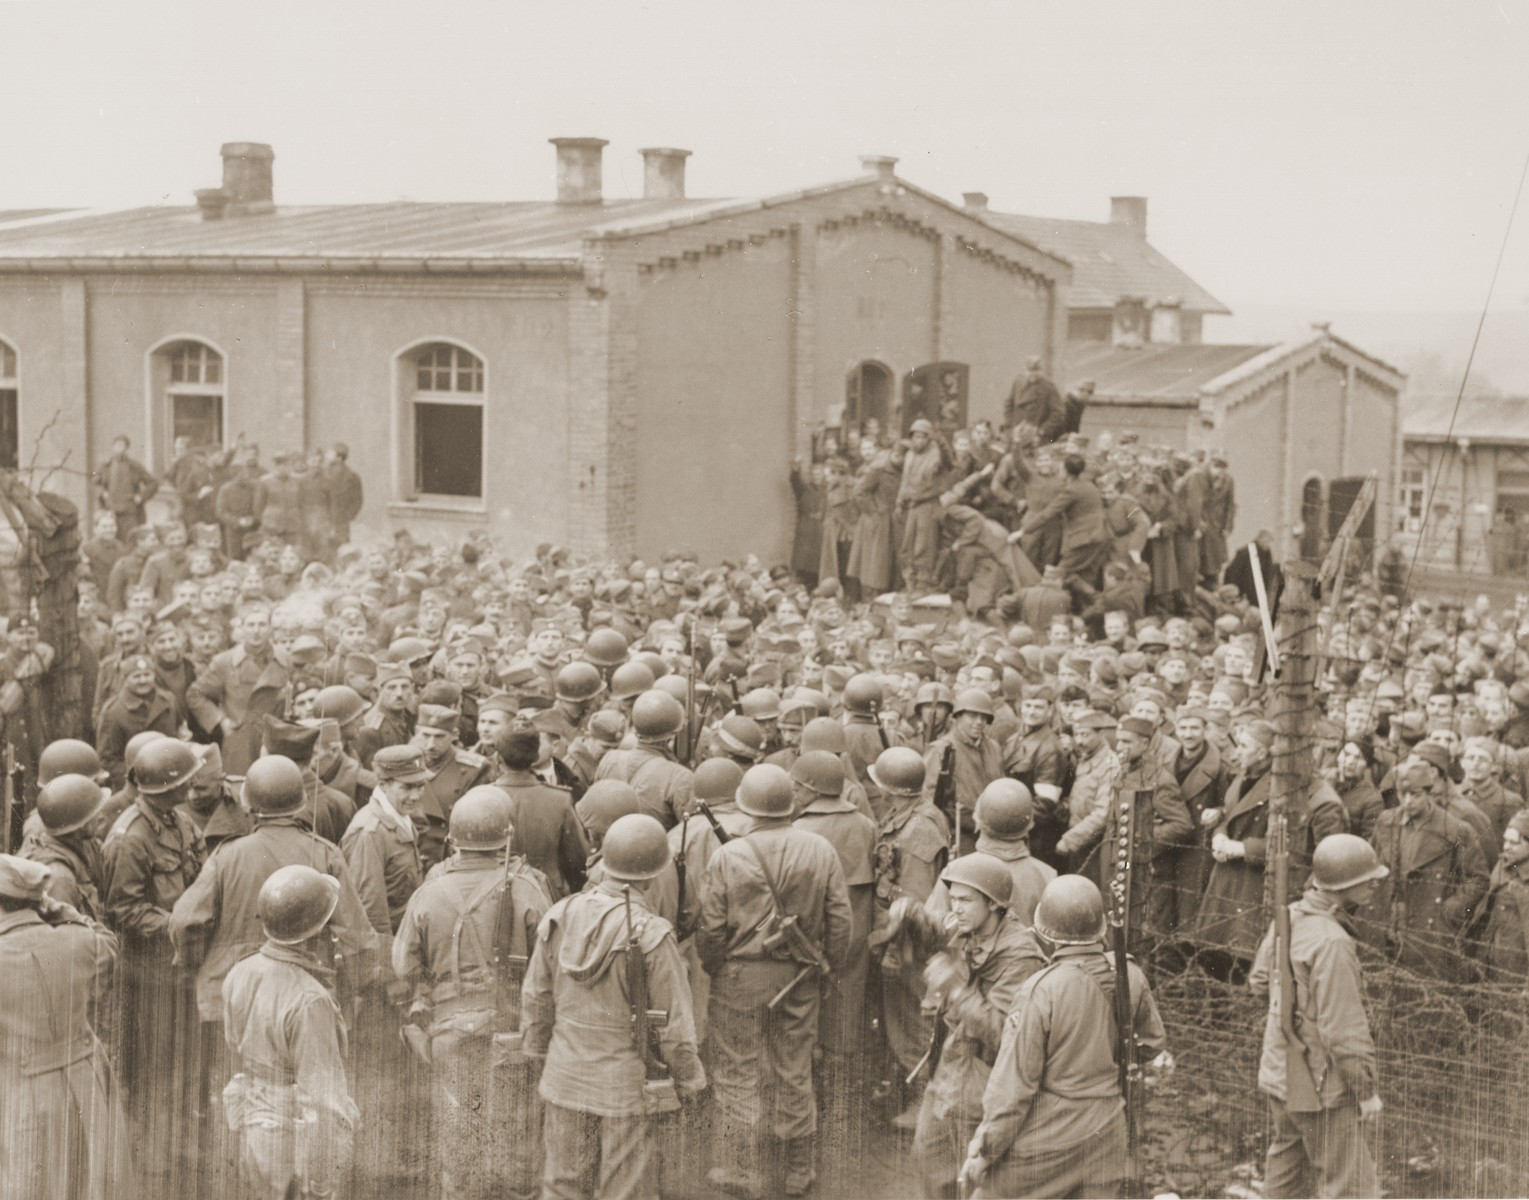 Allied prisoners in the Hammelburg POW camp greet their American liberators, who are from the 14th Armored Division.